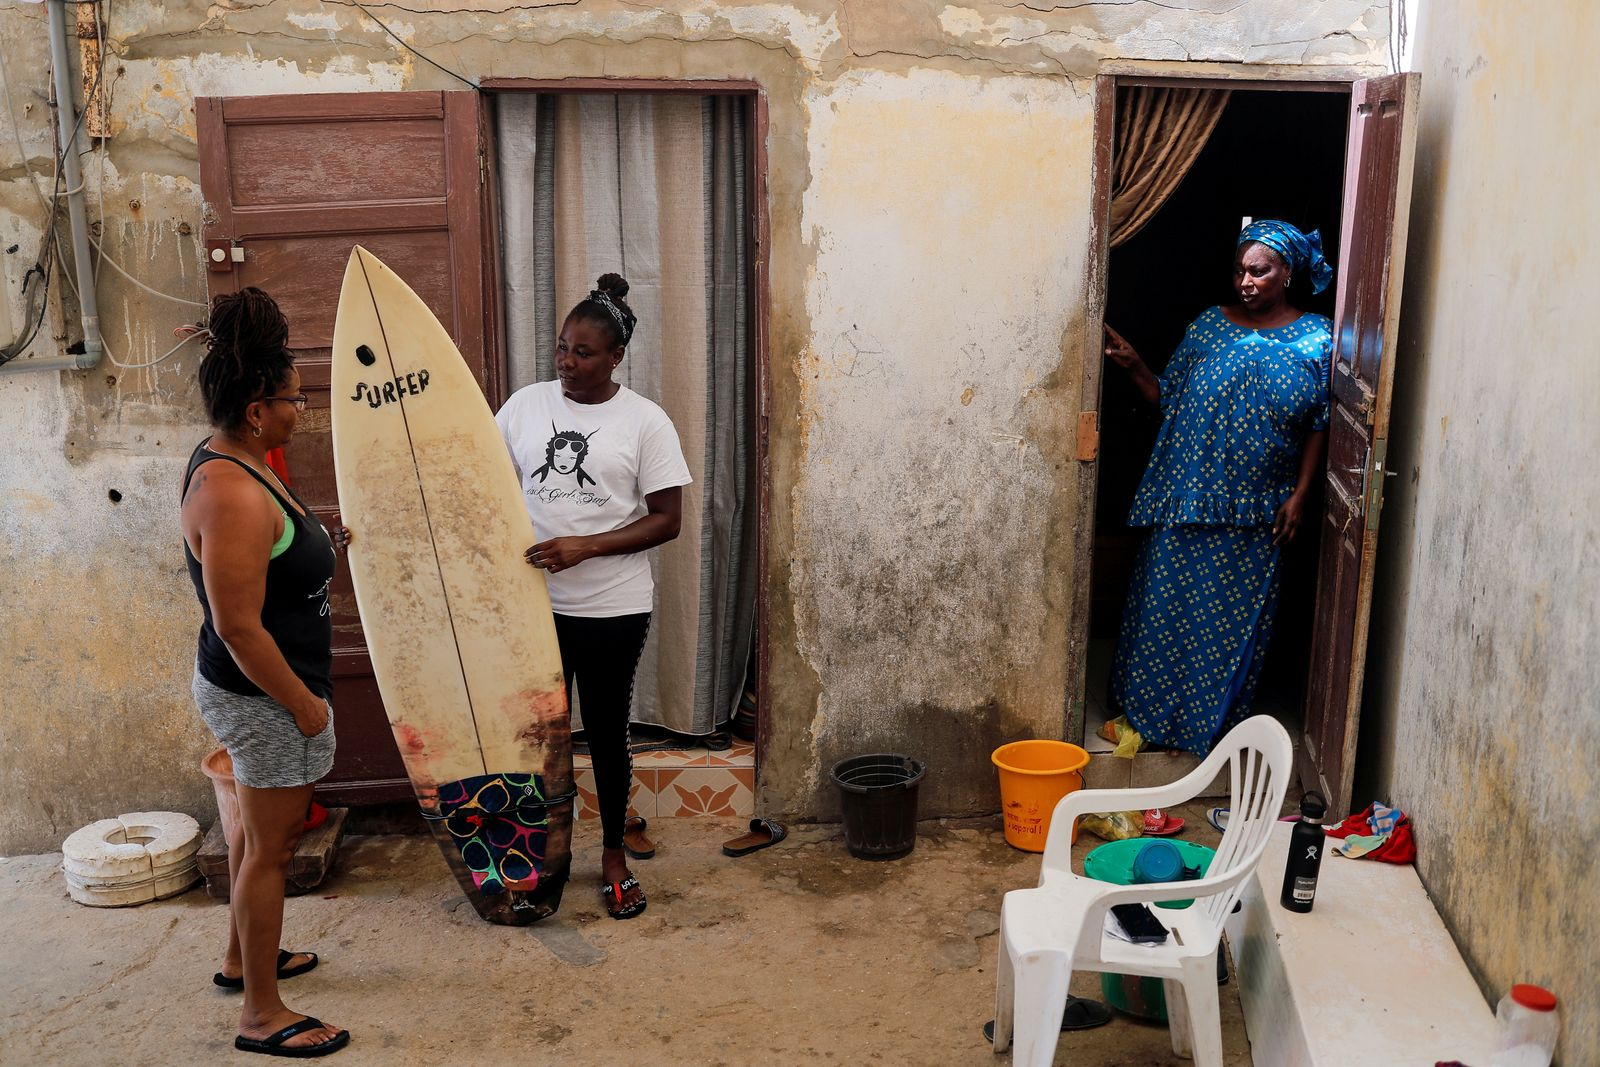 Wider Image: Meet Senegal's first female pro surfer inspiring girls to take to the waves